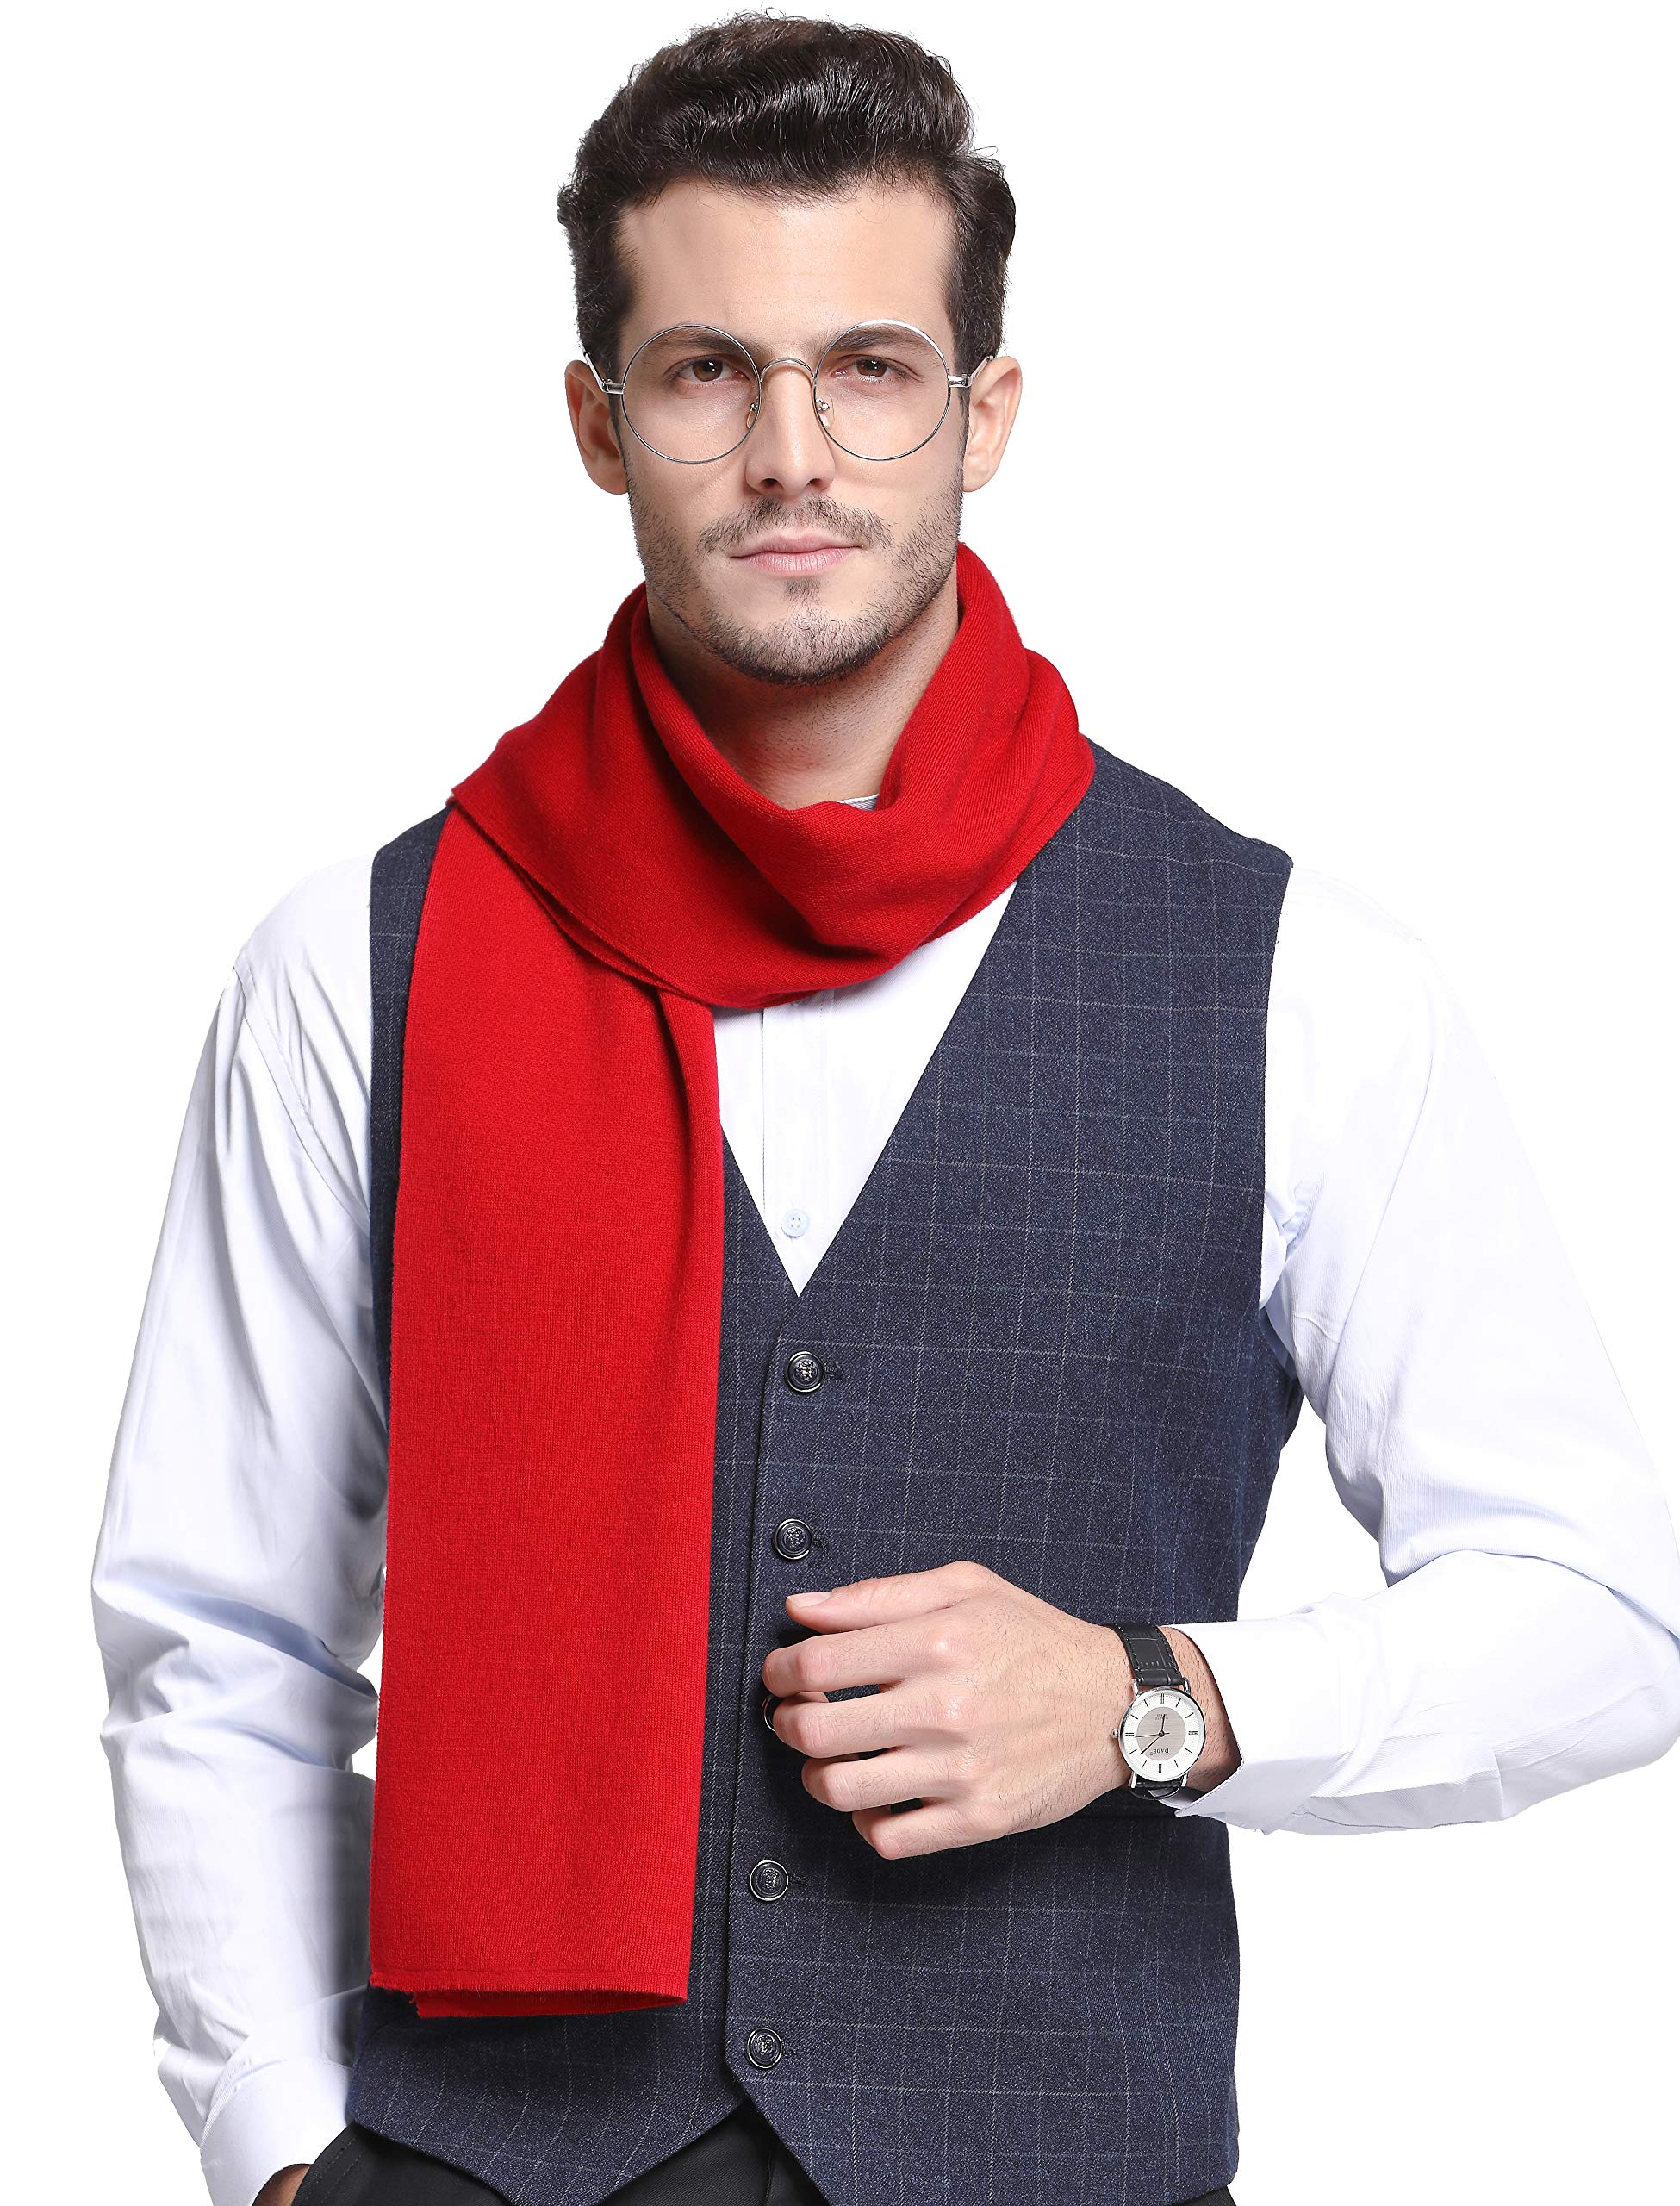 RIONA Men's 100% Australian Merino Wool Scarf Knitted Soft Warm Neckwear with Gift Box (9001_Bright Red)